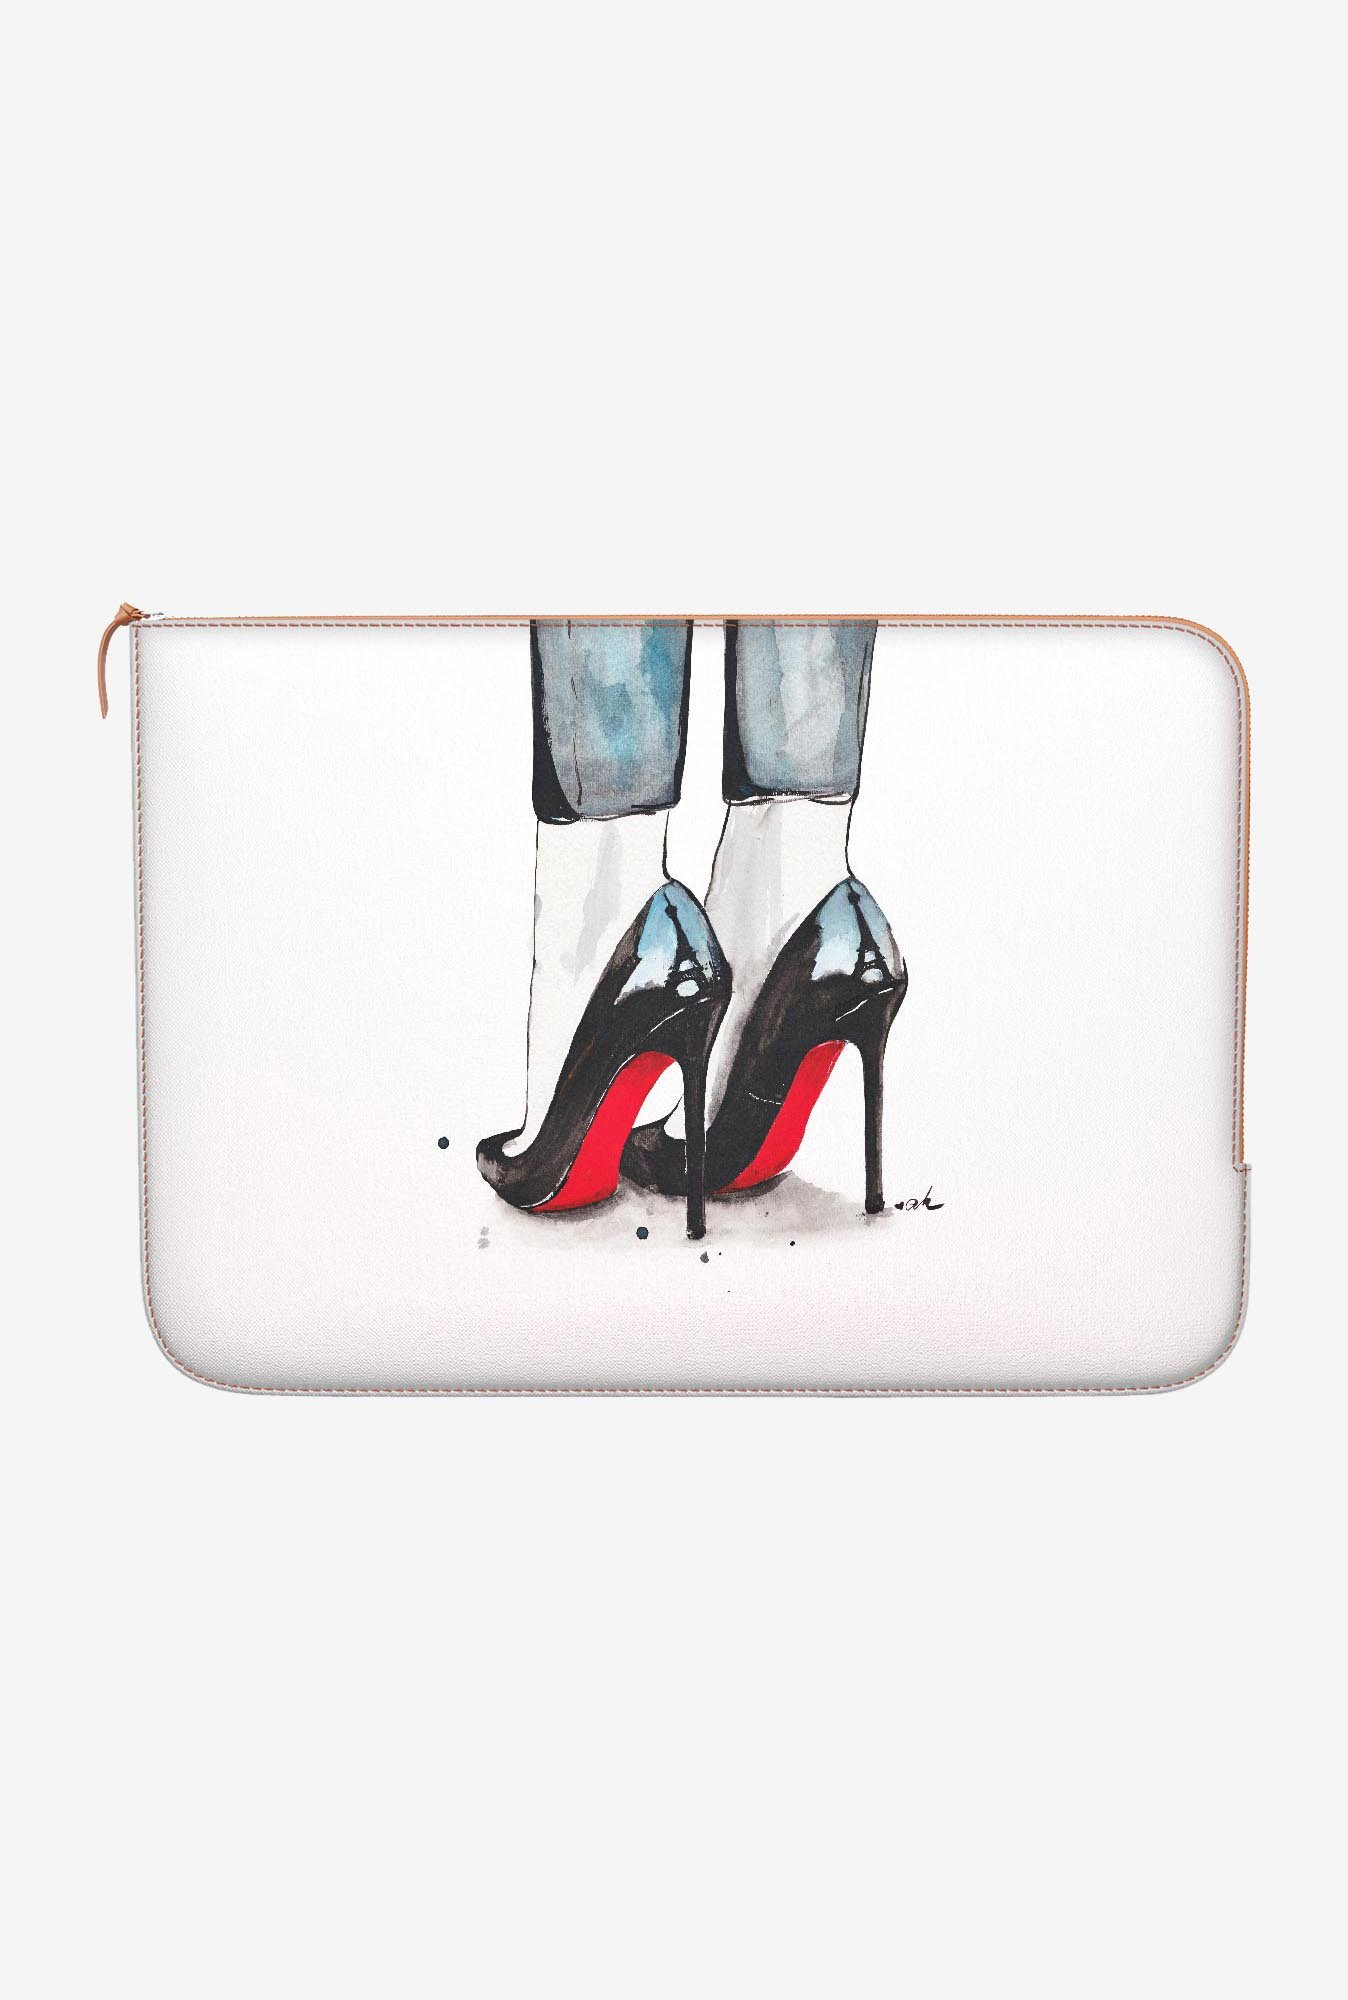 DailyObjects Cloudy In Paris MacBook Air 11 Zippered Sleeve